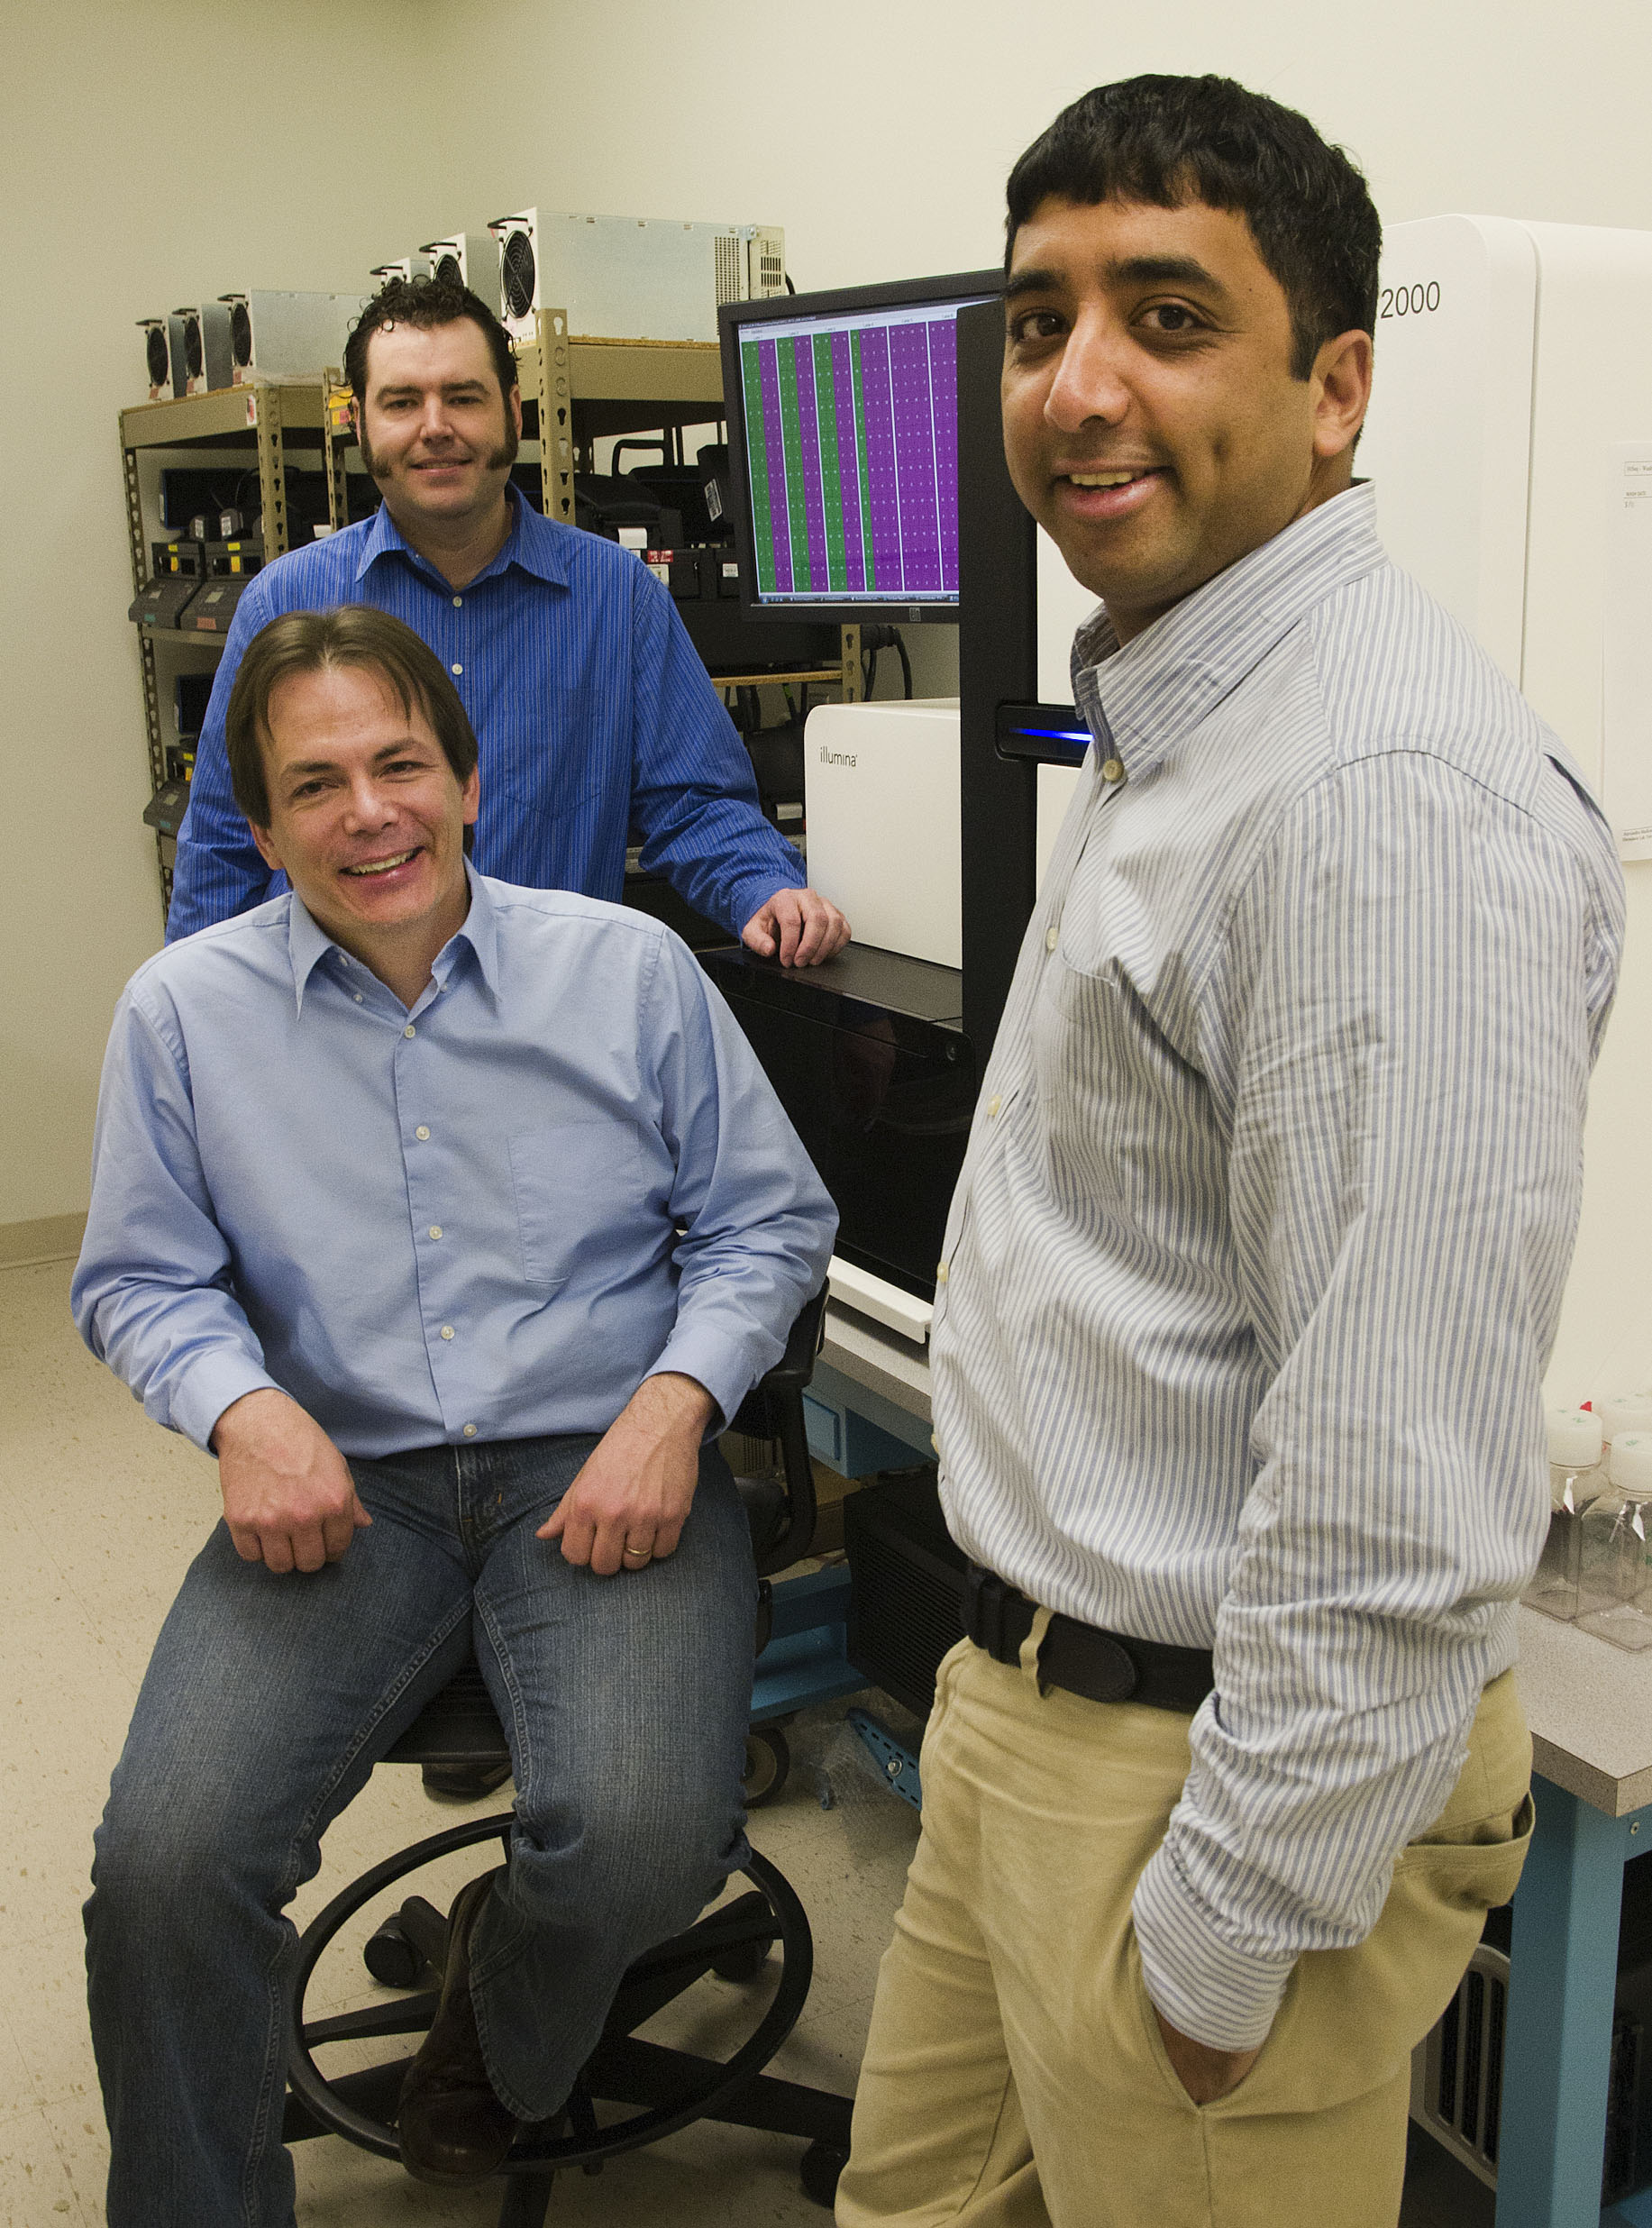 Brian O'Roak, Evan Eichler (seated) and Jay Shedure (right) in one of the UW labs where researchers search for sporadic mutations associated with autism.